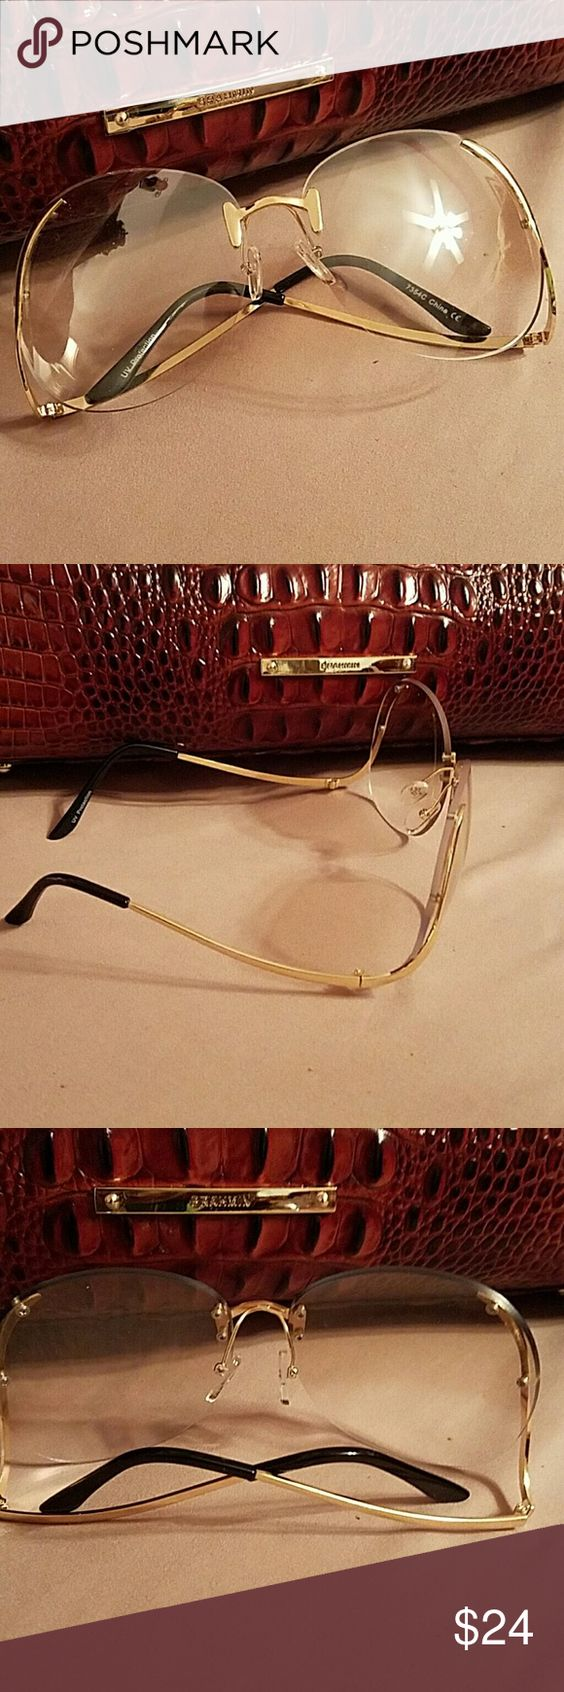 Large Vintage Glasses NEW! Trendy...Large Vintage Glasses with gold trim. Very slight tint to these shades. Make a statement! Accessories Glasses